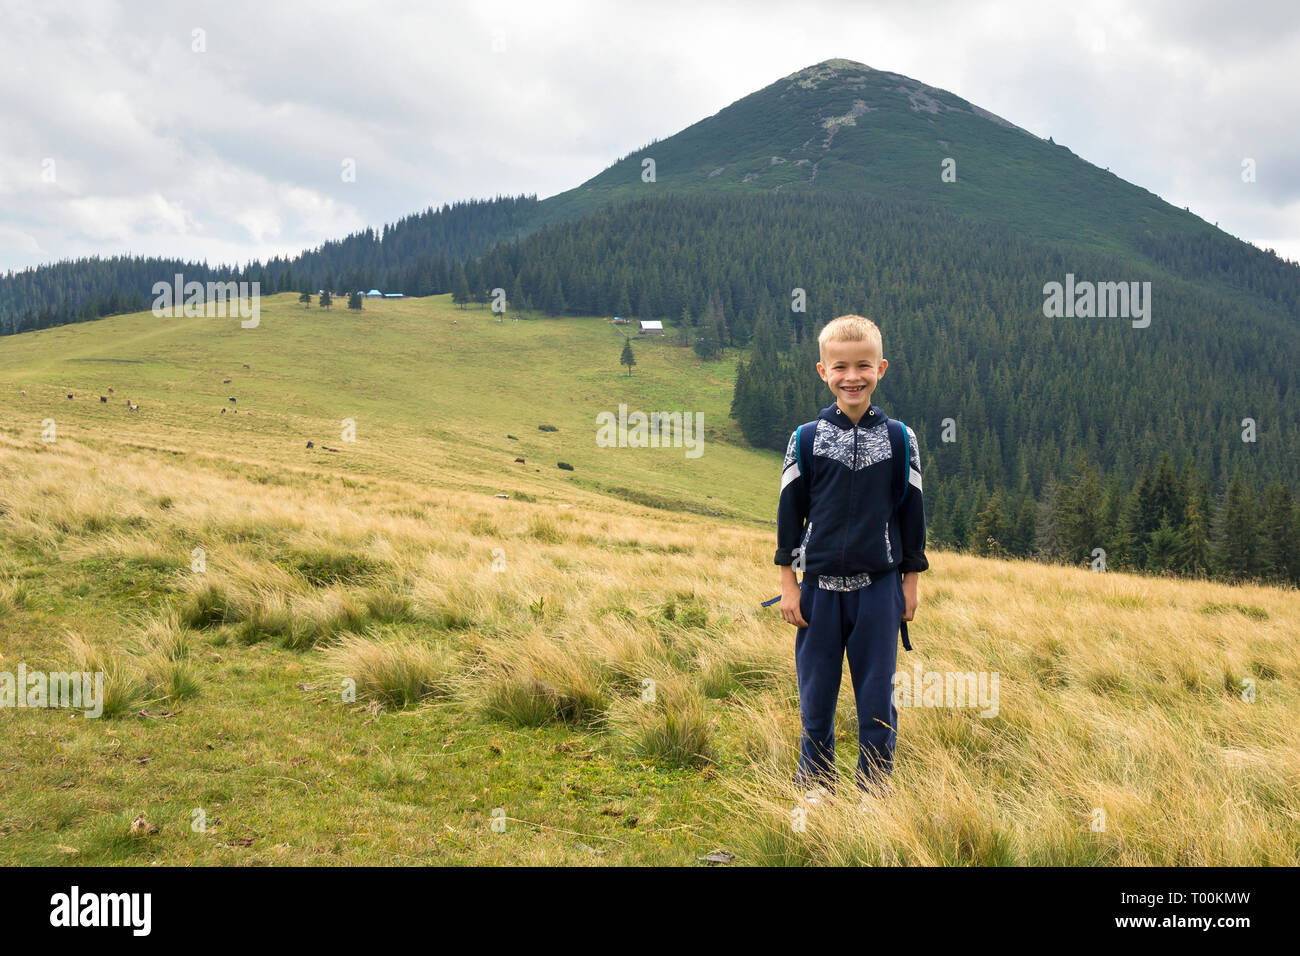 Young happy smiling child boy with backpack standing in mountain grassy valley on background of summer landscape, woody mountain view. Active lifestyl - Stock Image